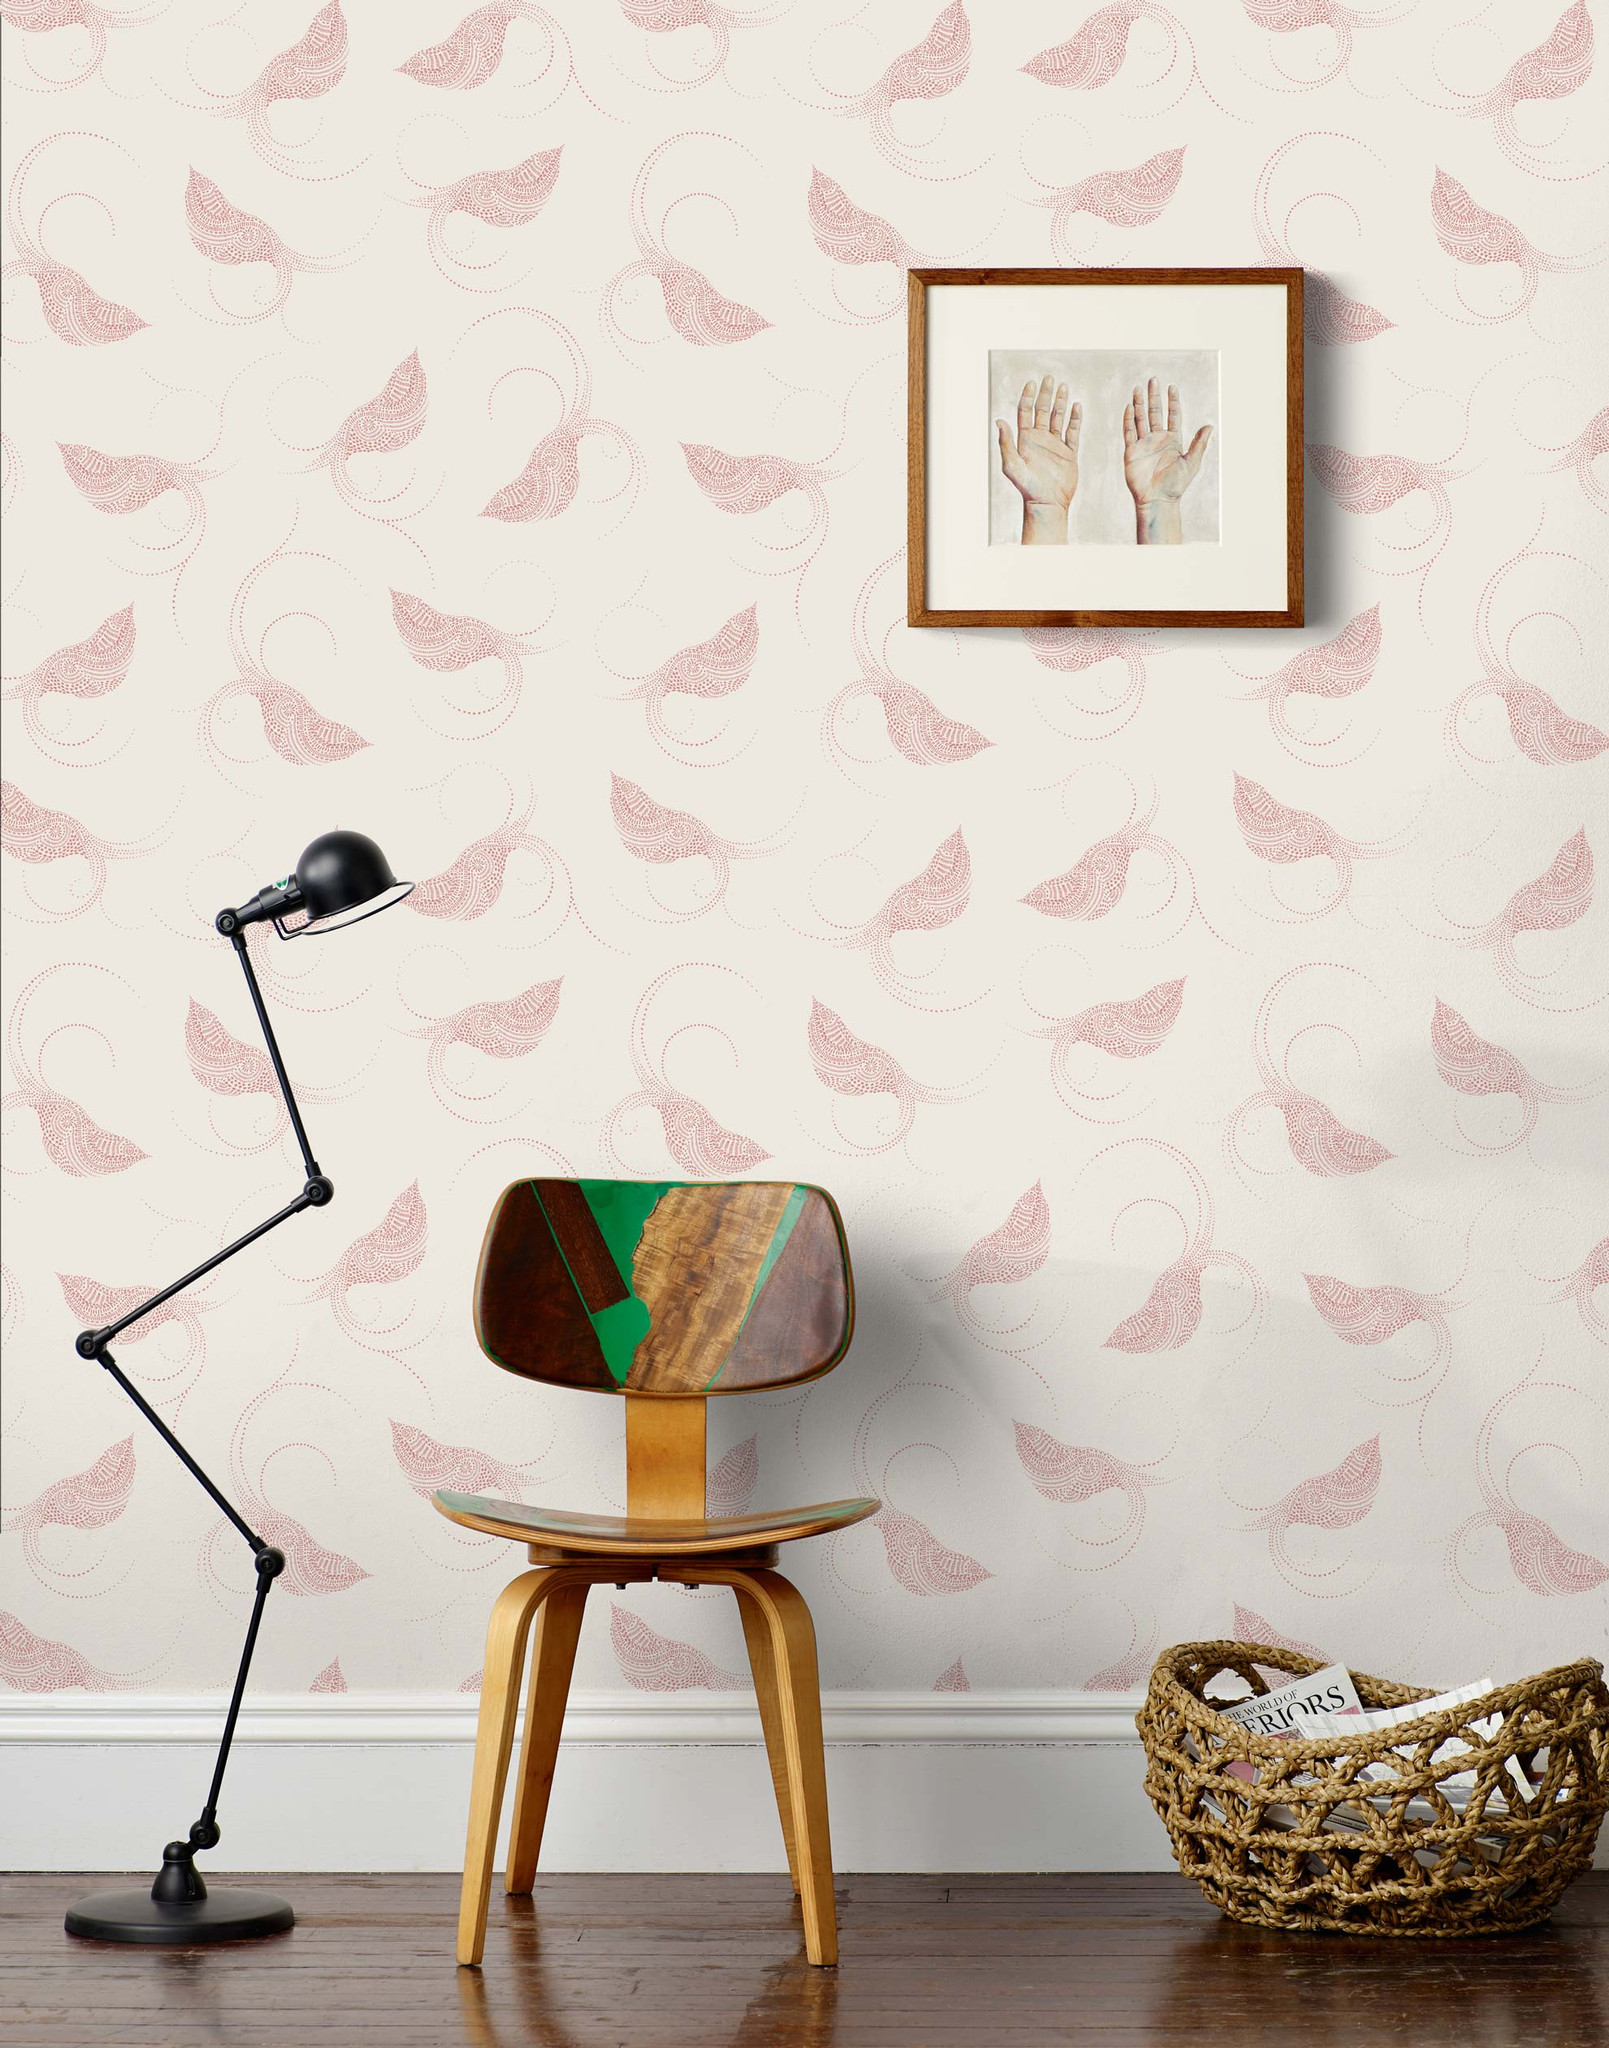 10 Wallpaper Designs That will Fit Perfectly in your Home wallpaper designs 10 Wallpaper Designs That will Fit Perfectly in your Home 10 Wallpaper Designs That will Fit Perfectly in your Home3